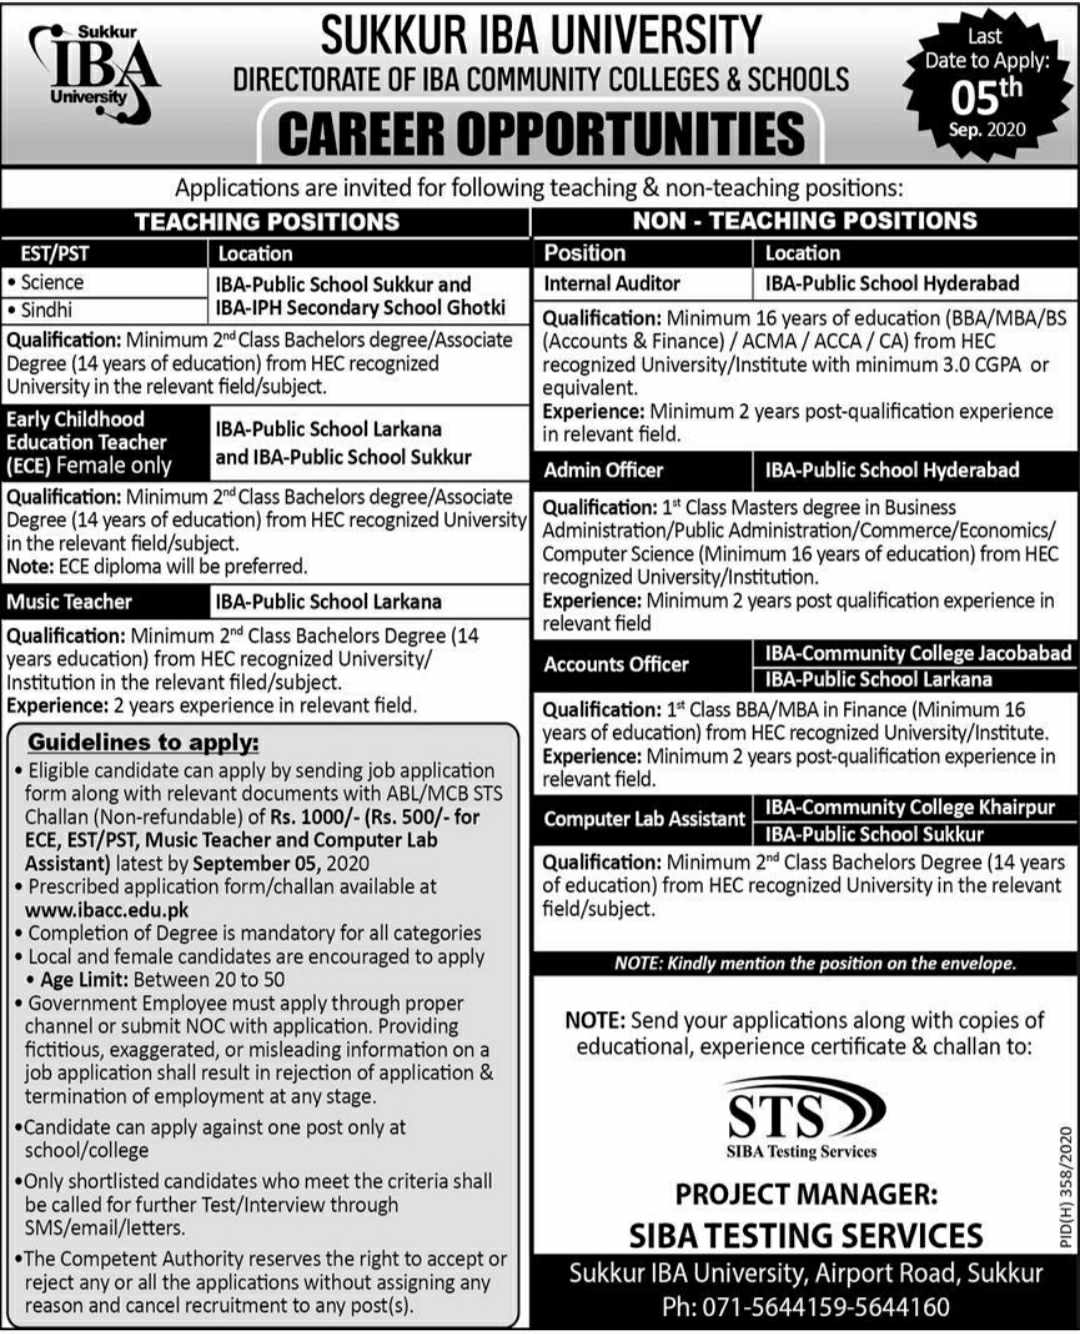 Sukkur IBA University Education Posts Sukkur 2020 for Computer Lab Assistant, Accounts Officer,  Admin Officer and more